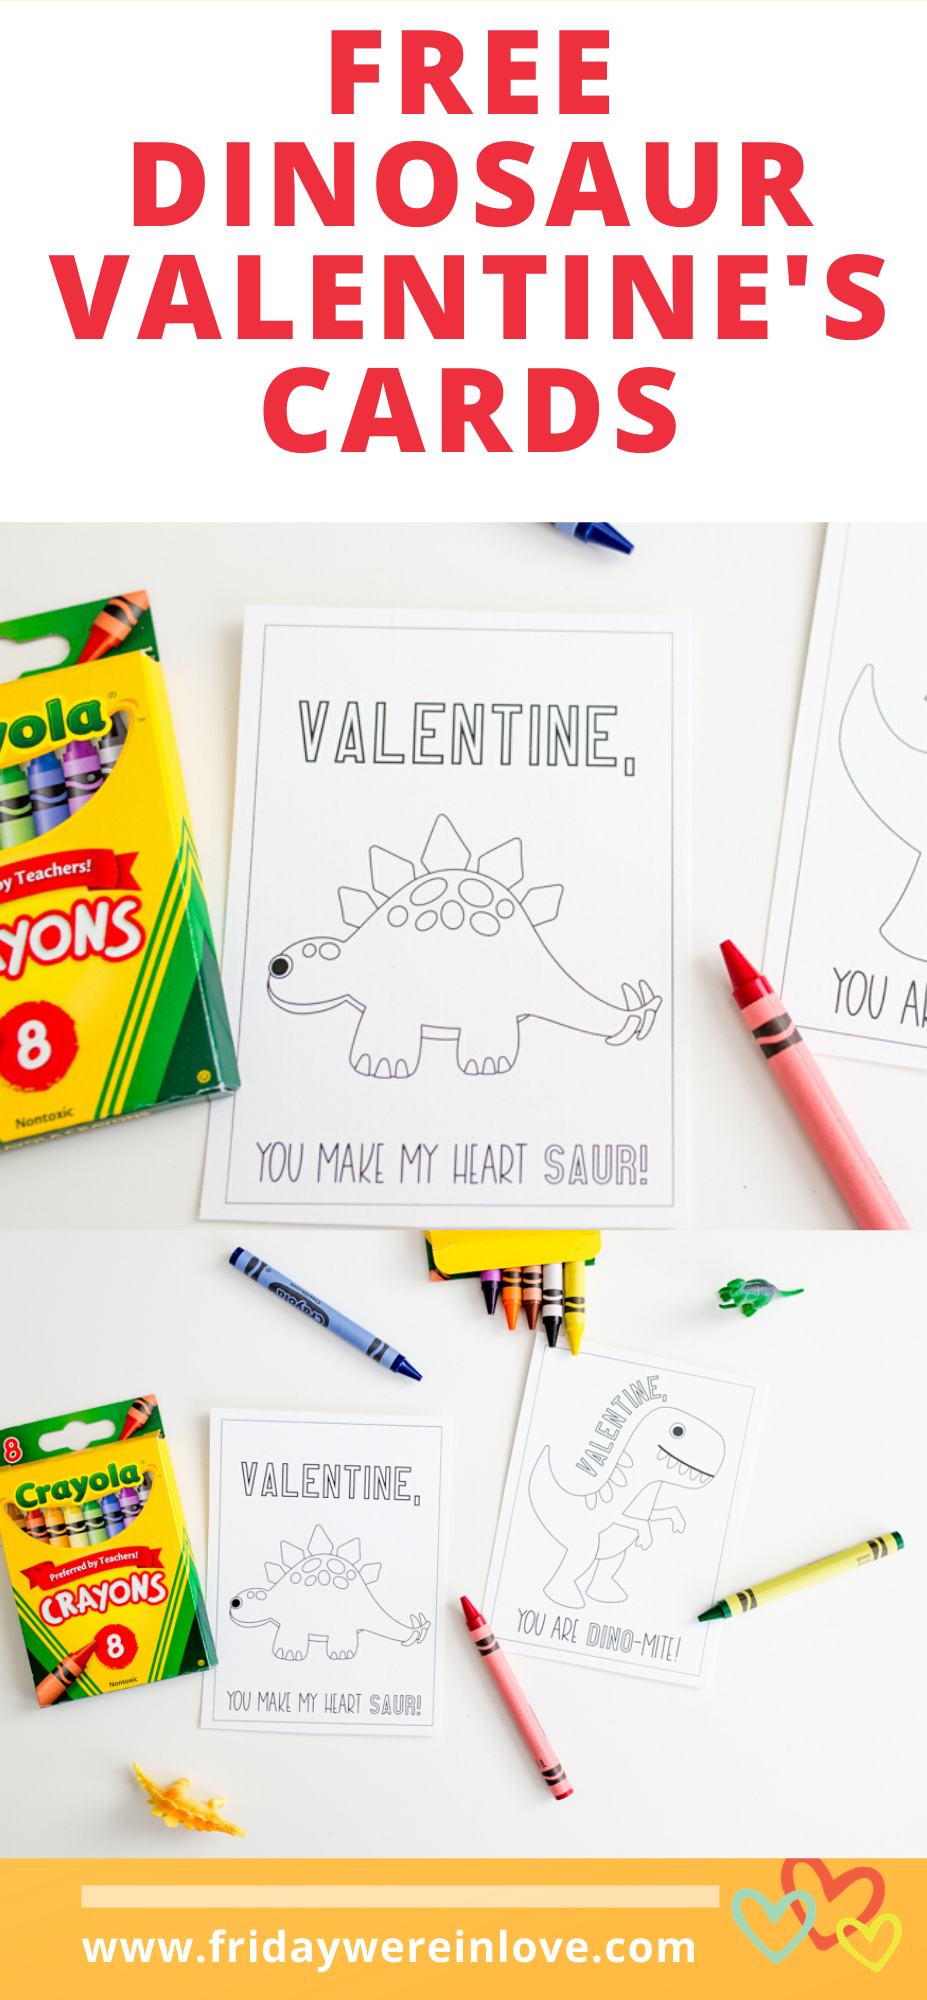 Free Dinosaur Valentines Day Cards Dinosaur Valentines Day Cards free download A great alternative to candy gift a Valentine card they can color with a few crayons This f...